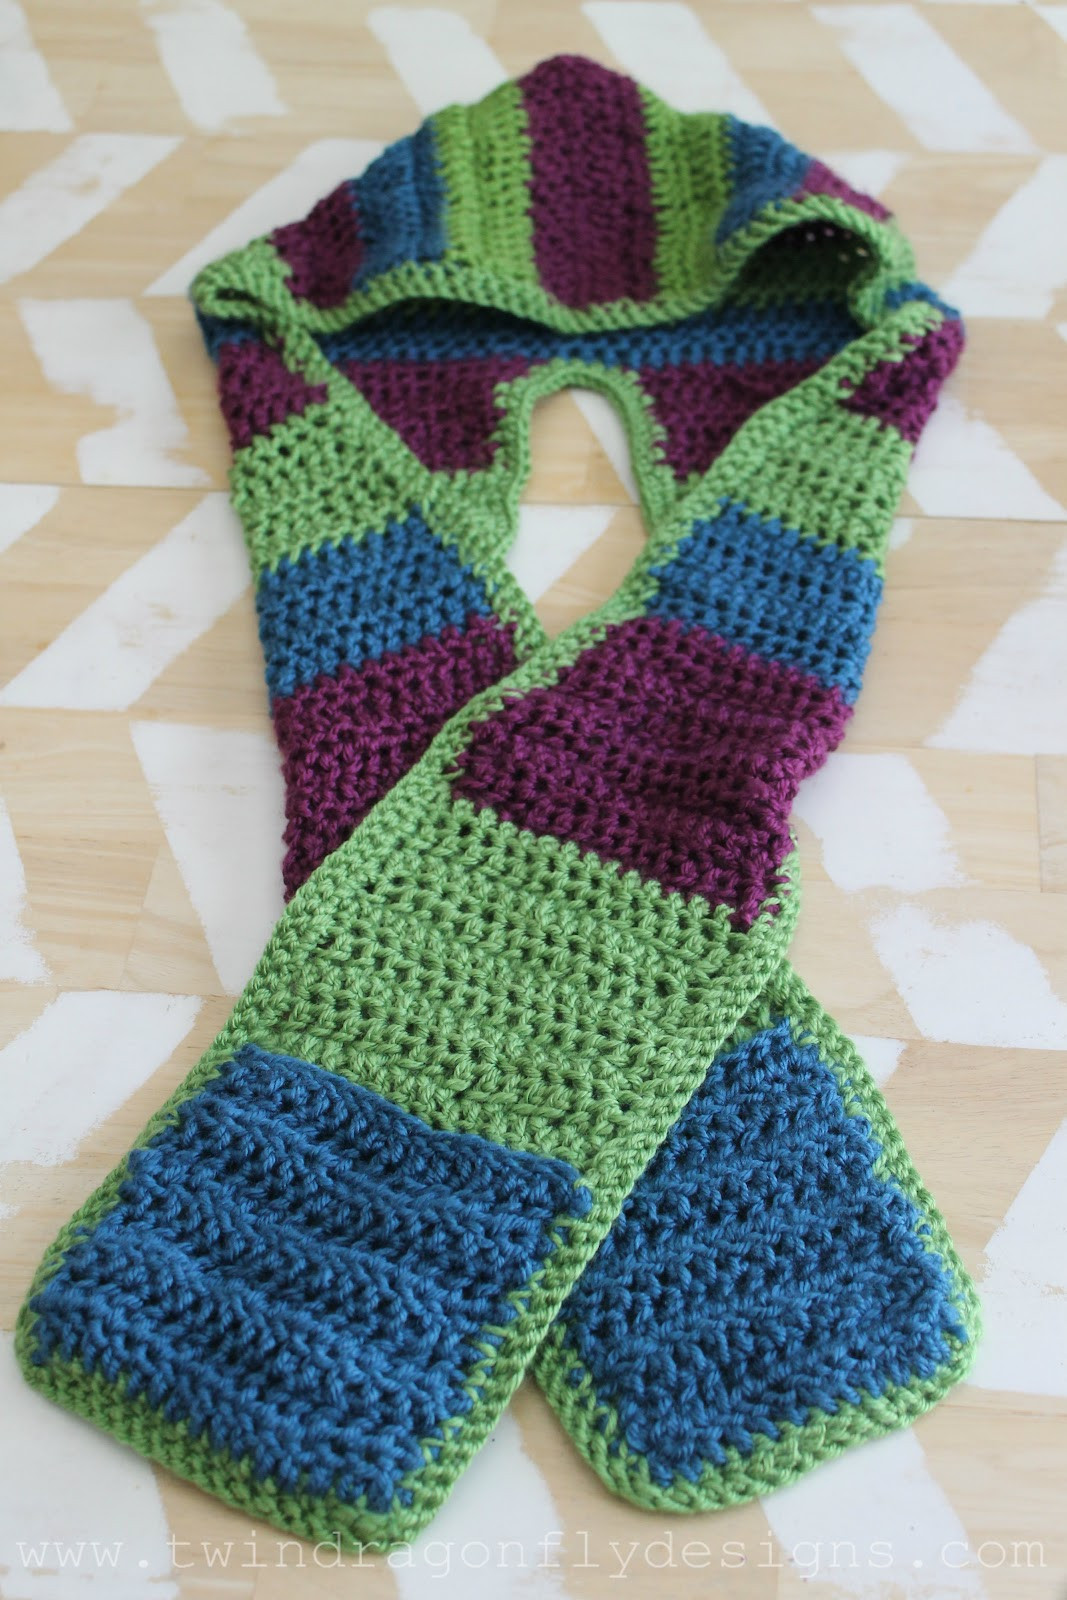 Fresh Crochet Hooded Scarf Pattern Dragonfly Designs Crochet Scarves Of Amazing 43 Photos Crochet Scarves